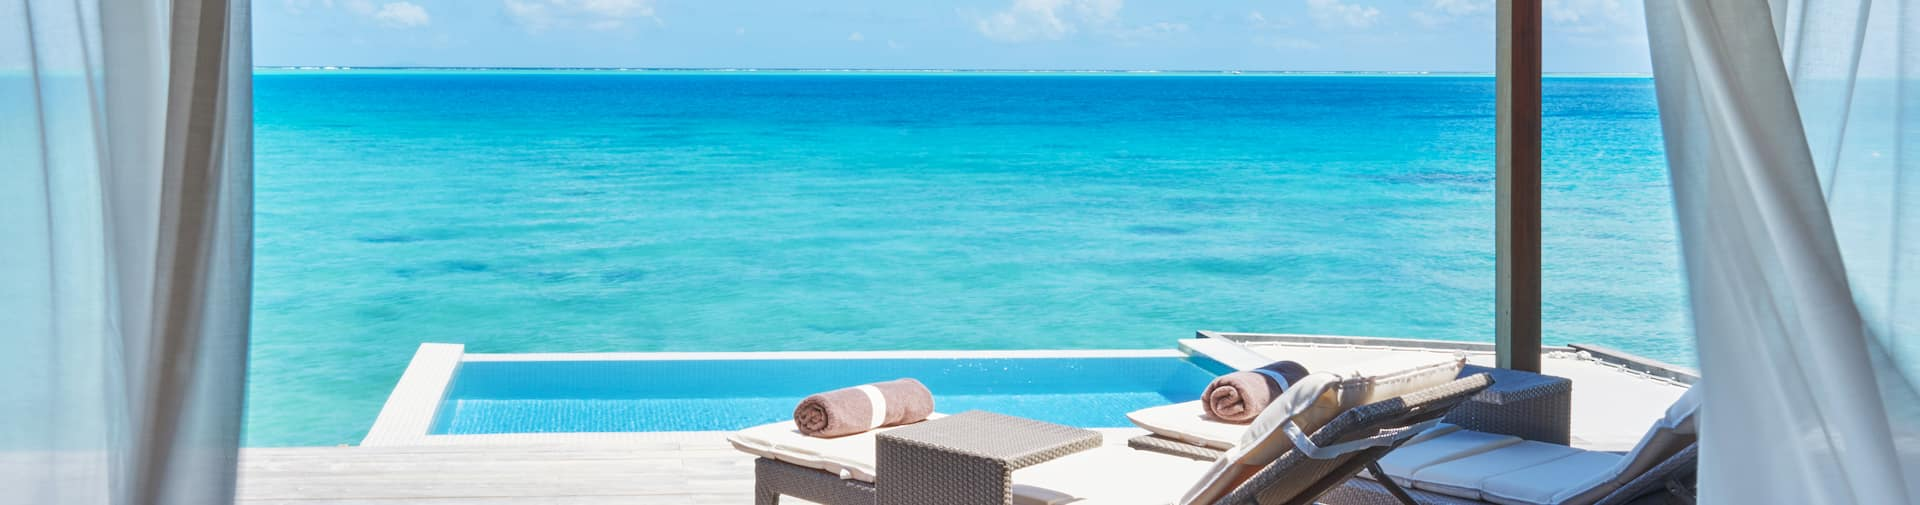 Two sun loungers overlooking crystal clear ocean